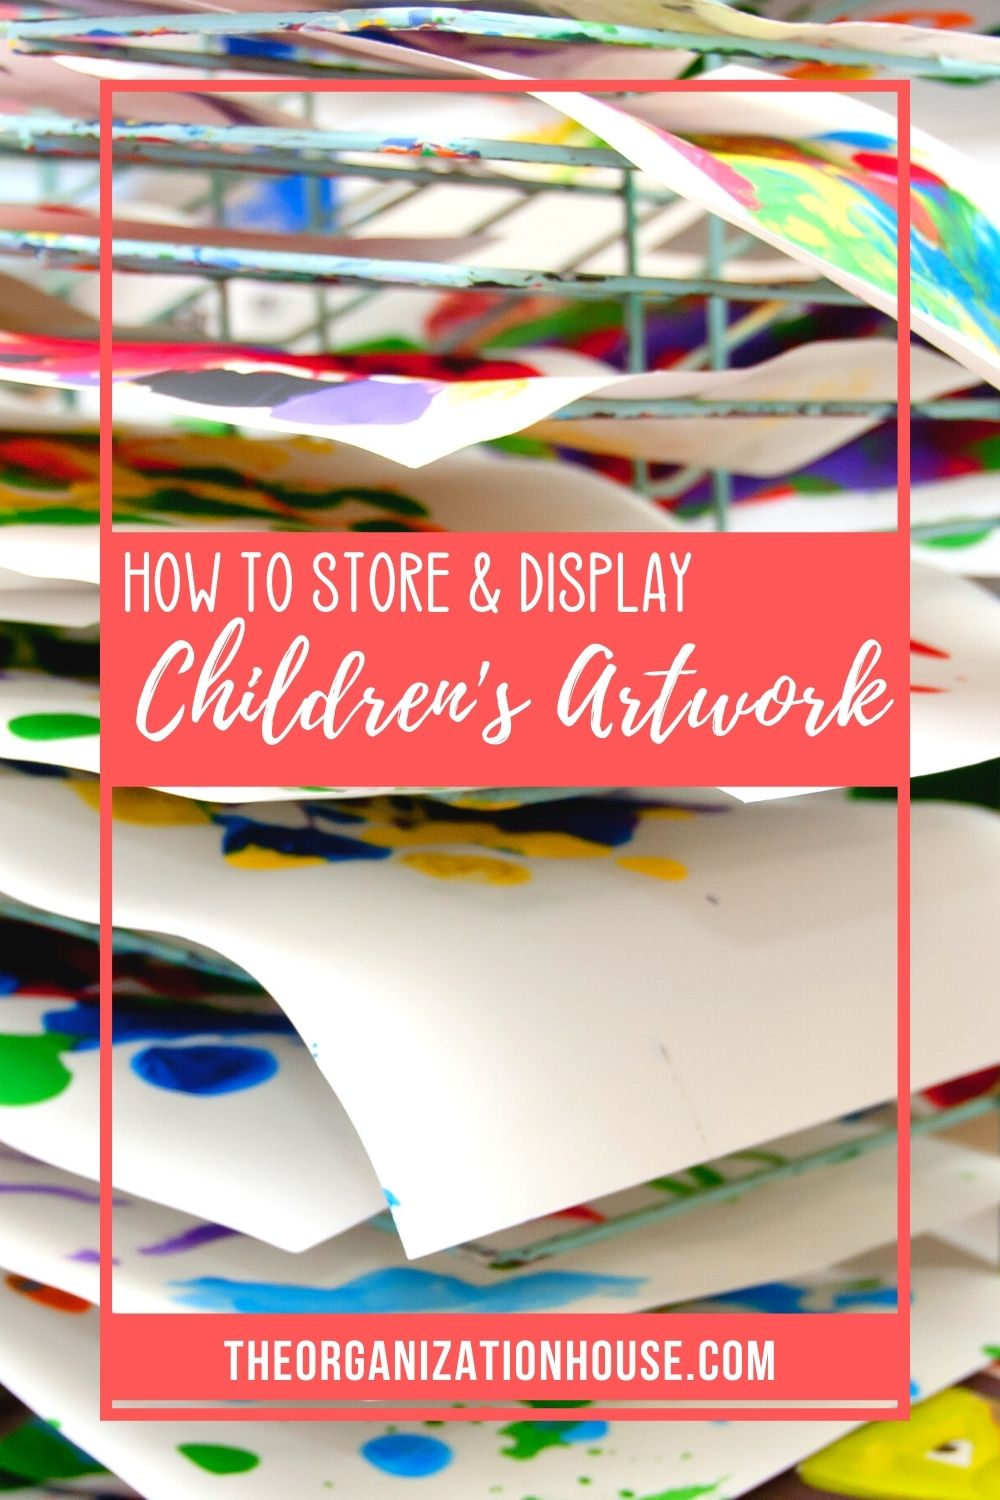 How to Store and Display Children's Artwork